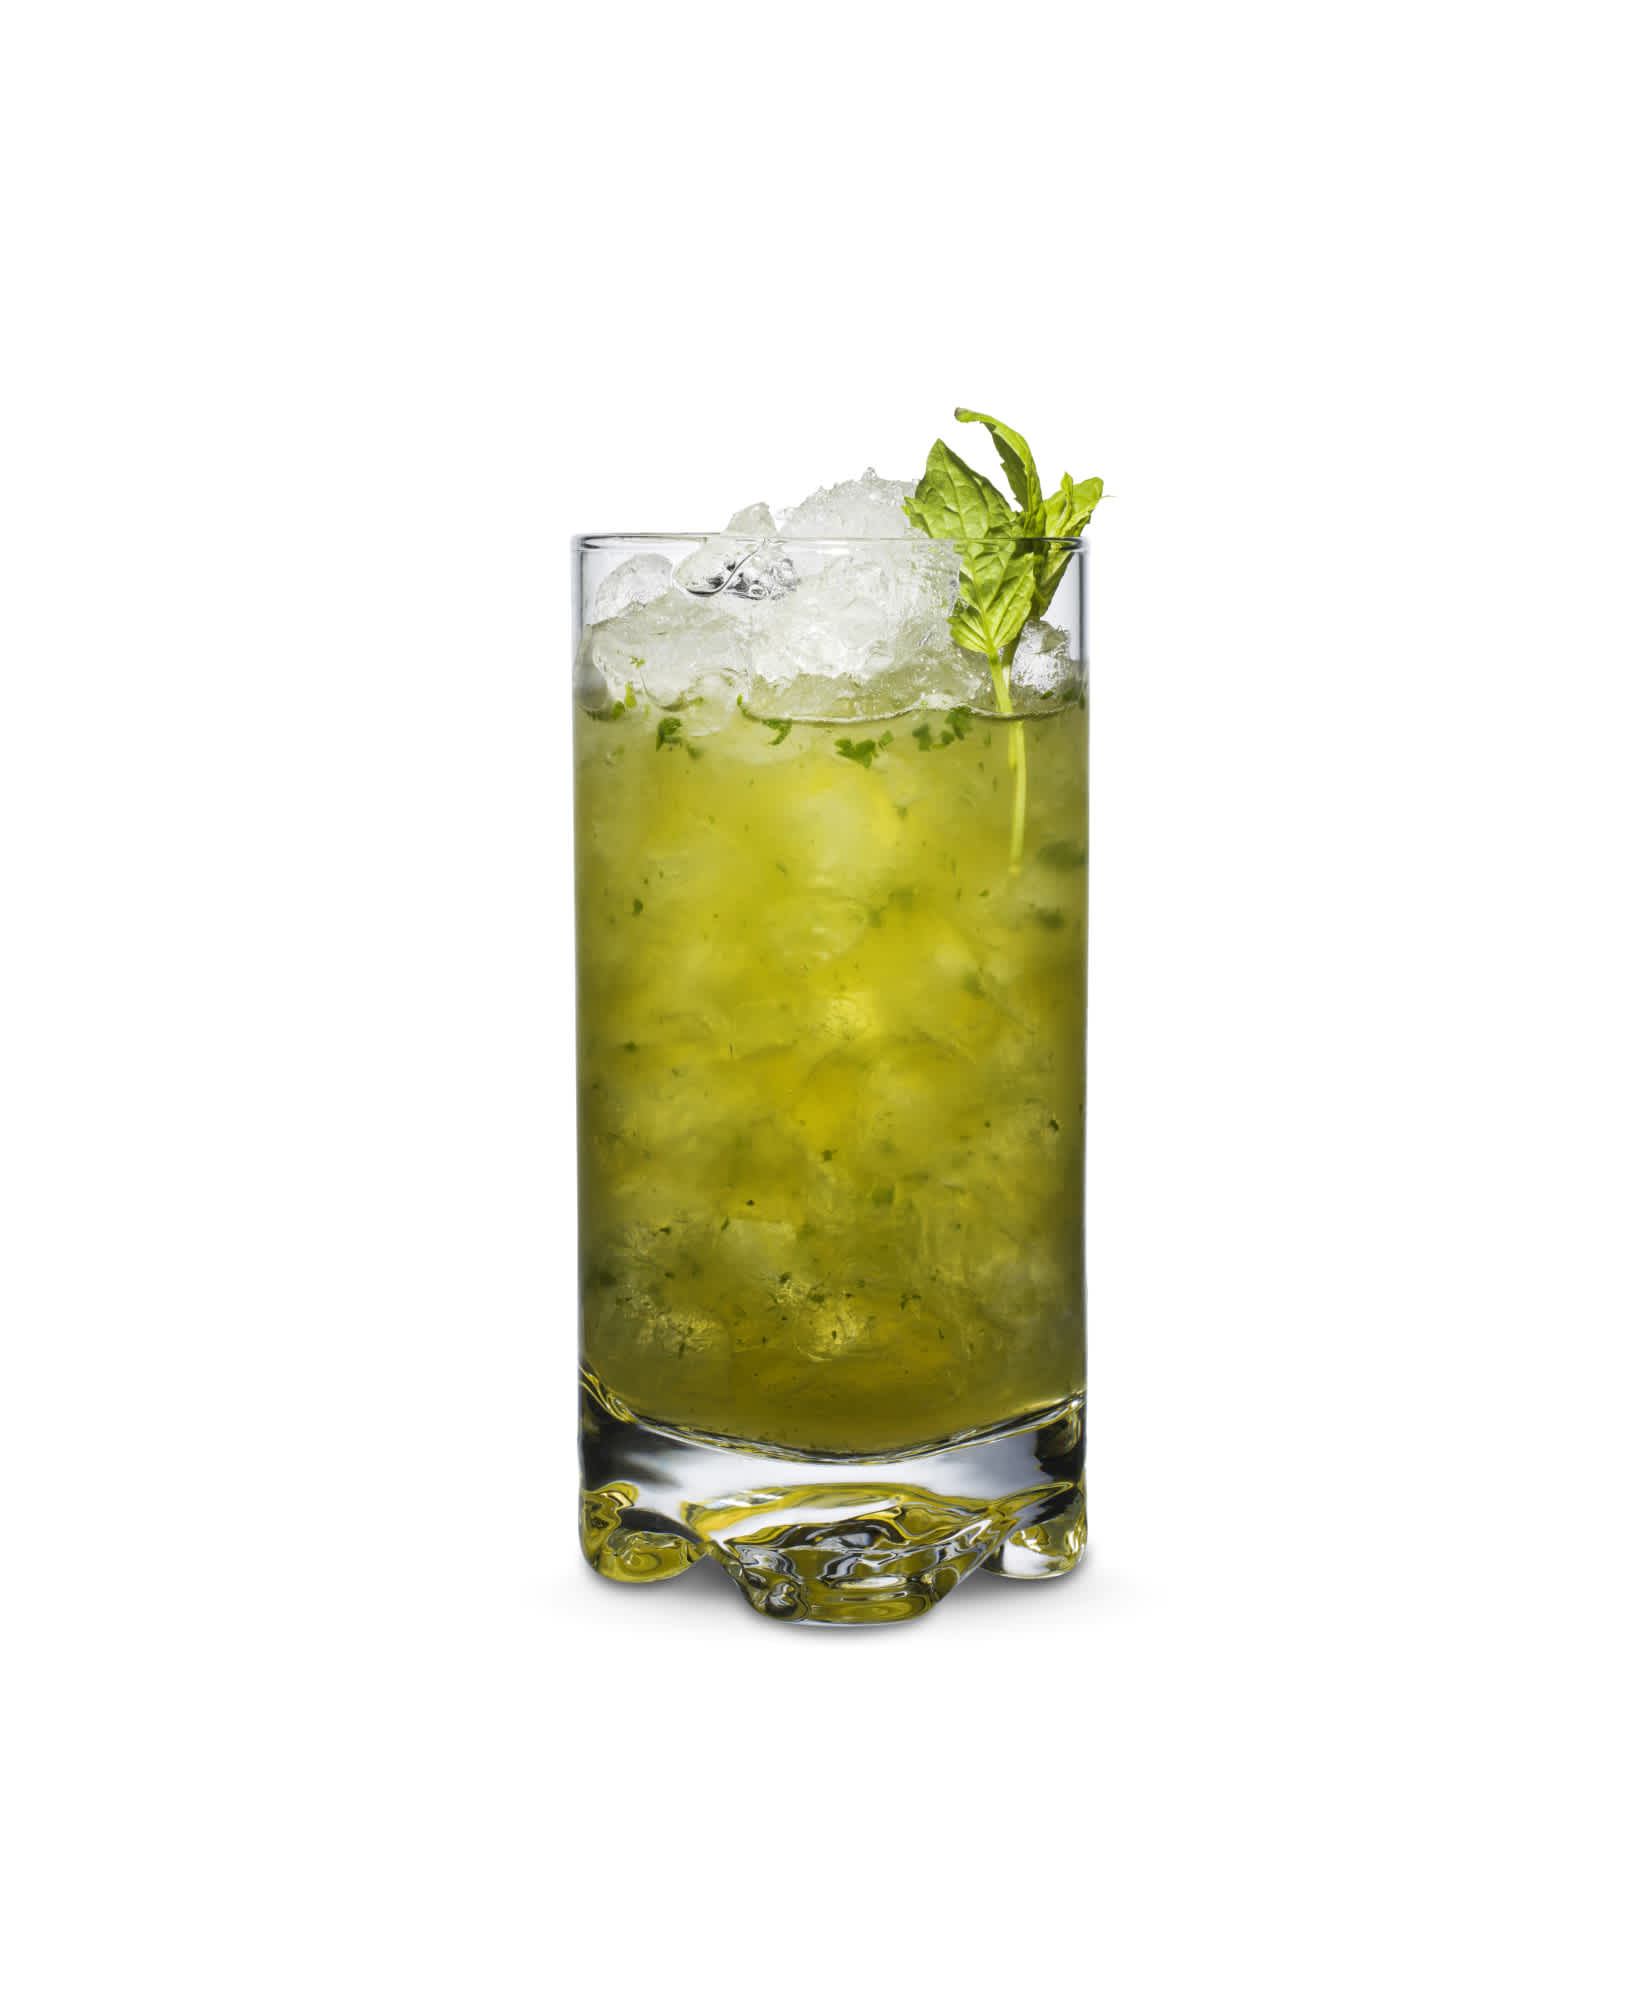 Mint Julep is a whisky cocktail made with fresh mint. Glass is filled with crushed ice.